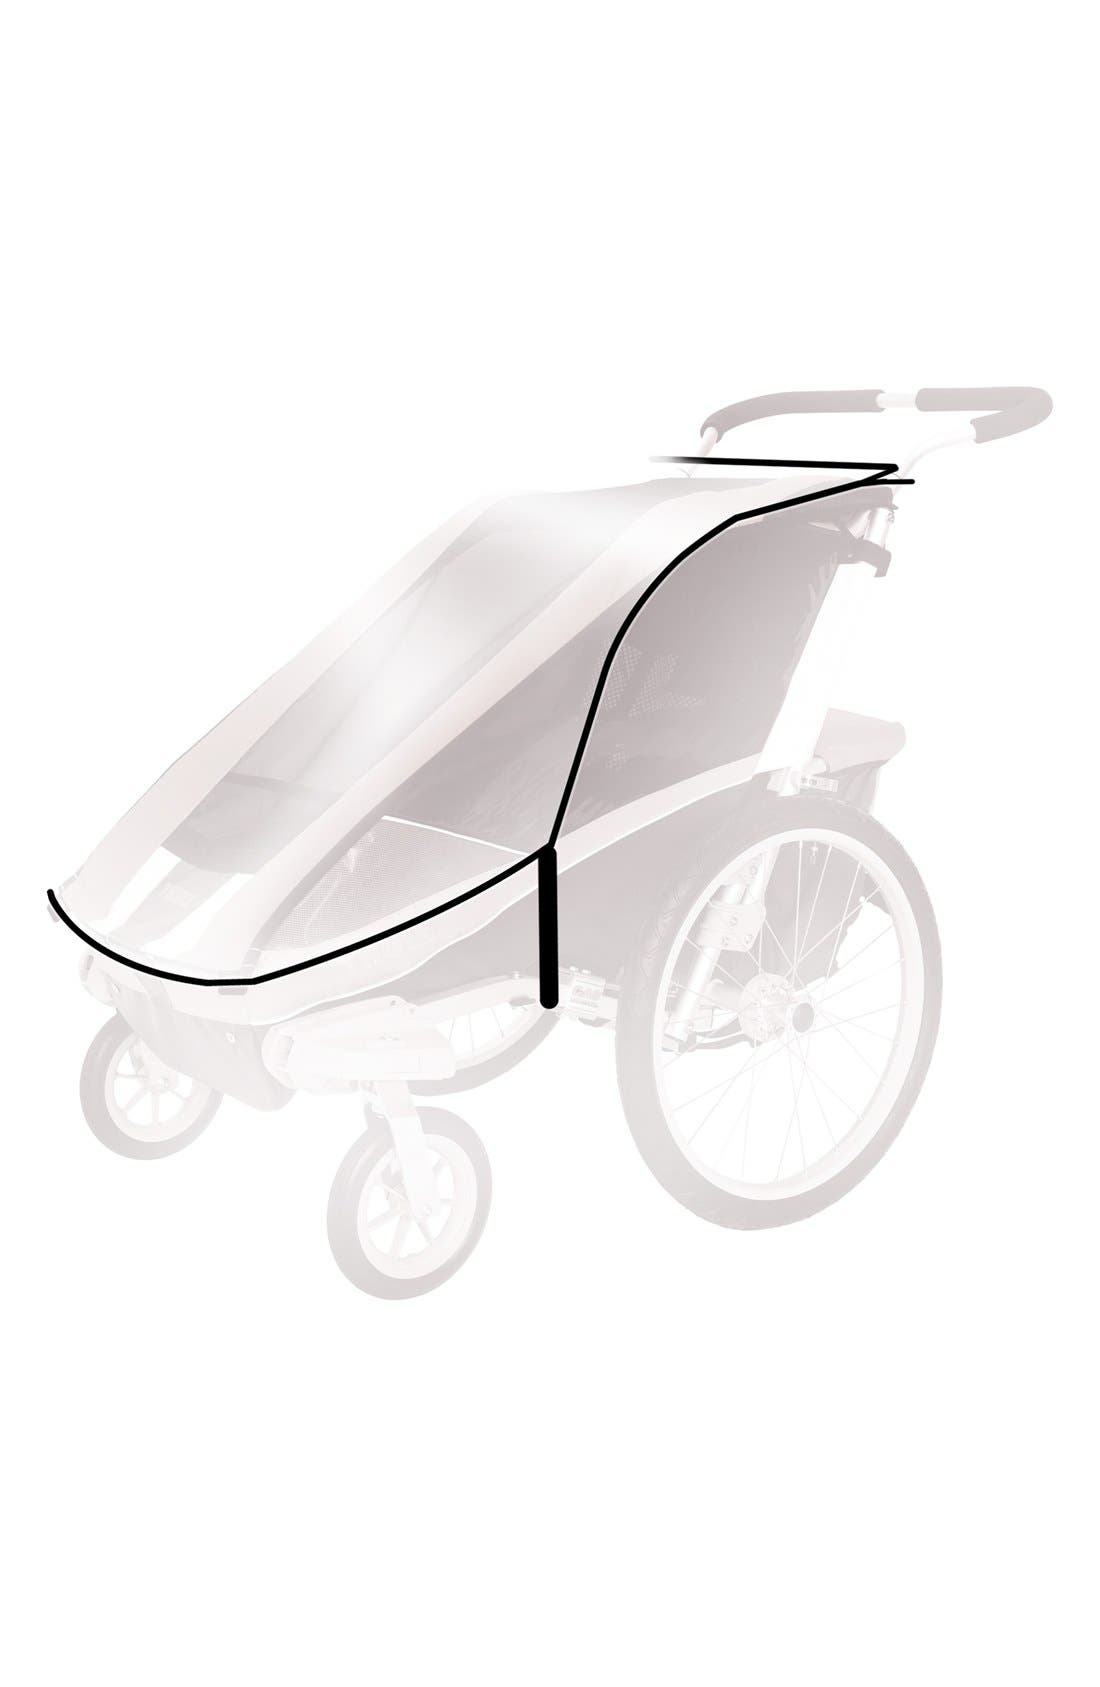 Alternate Image 1 Selected - Thule Protective Rain Cover for Thule Chariot Cheetah 1 Stroller